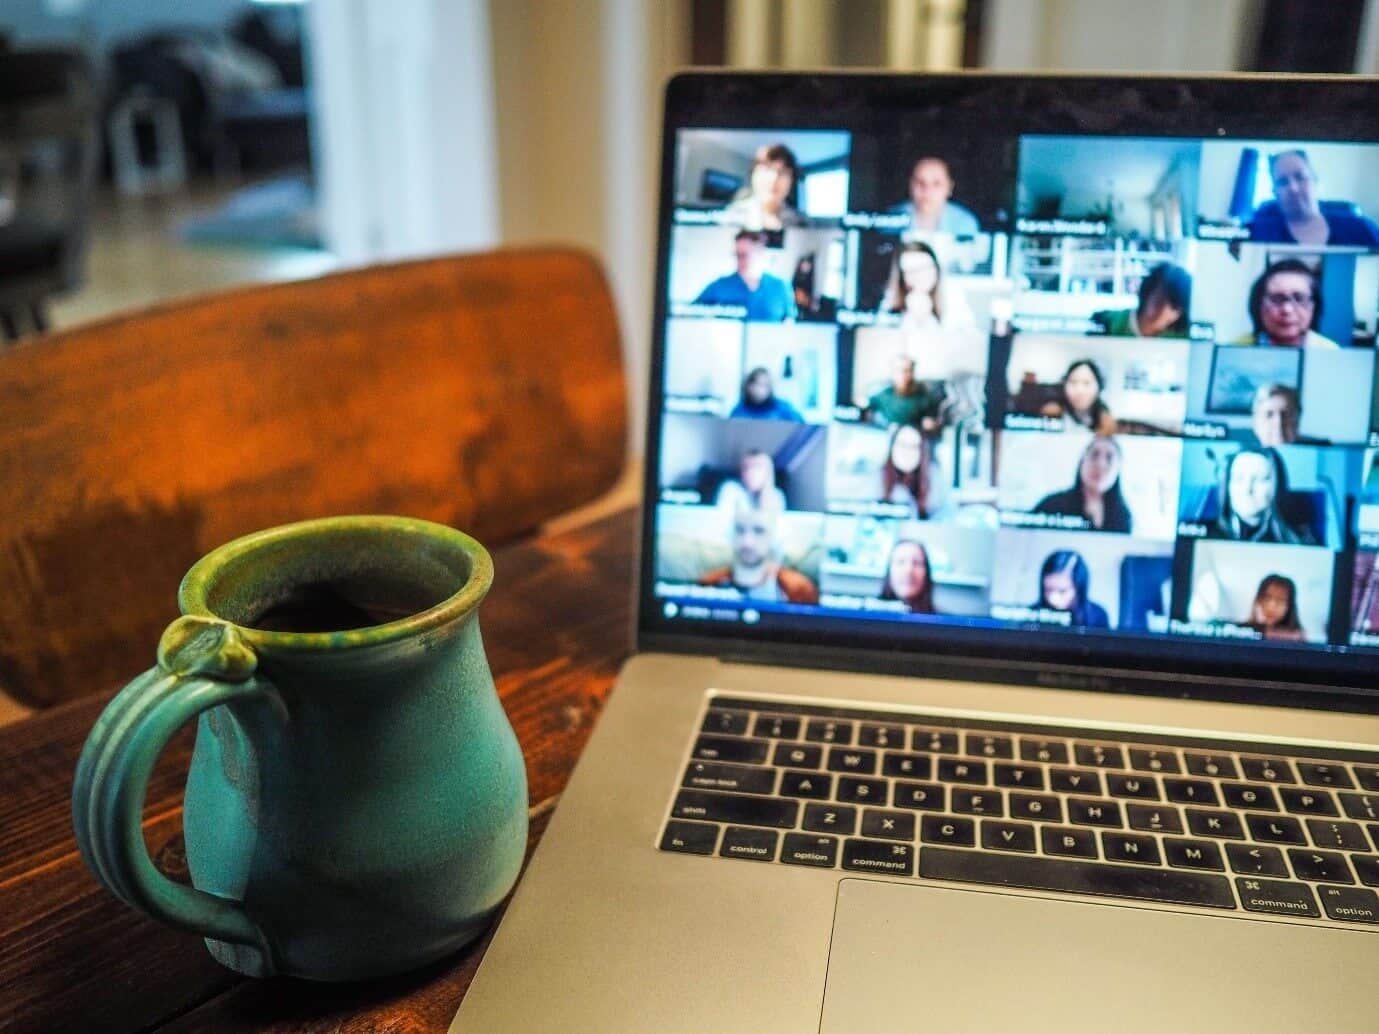 content/nl-nl/images/repository/isc/2020/videoconferencing1.jpg